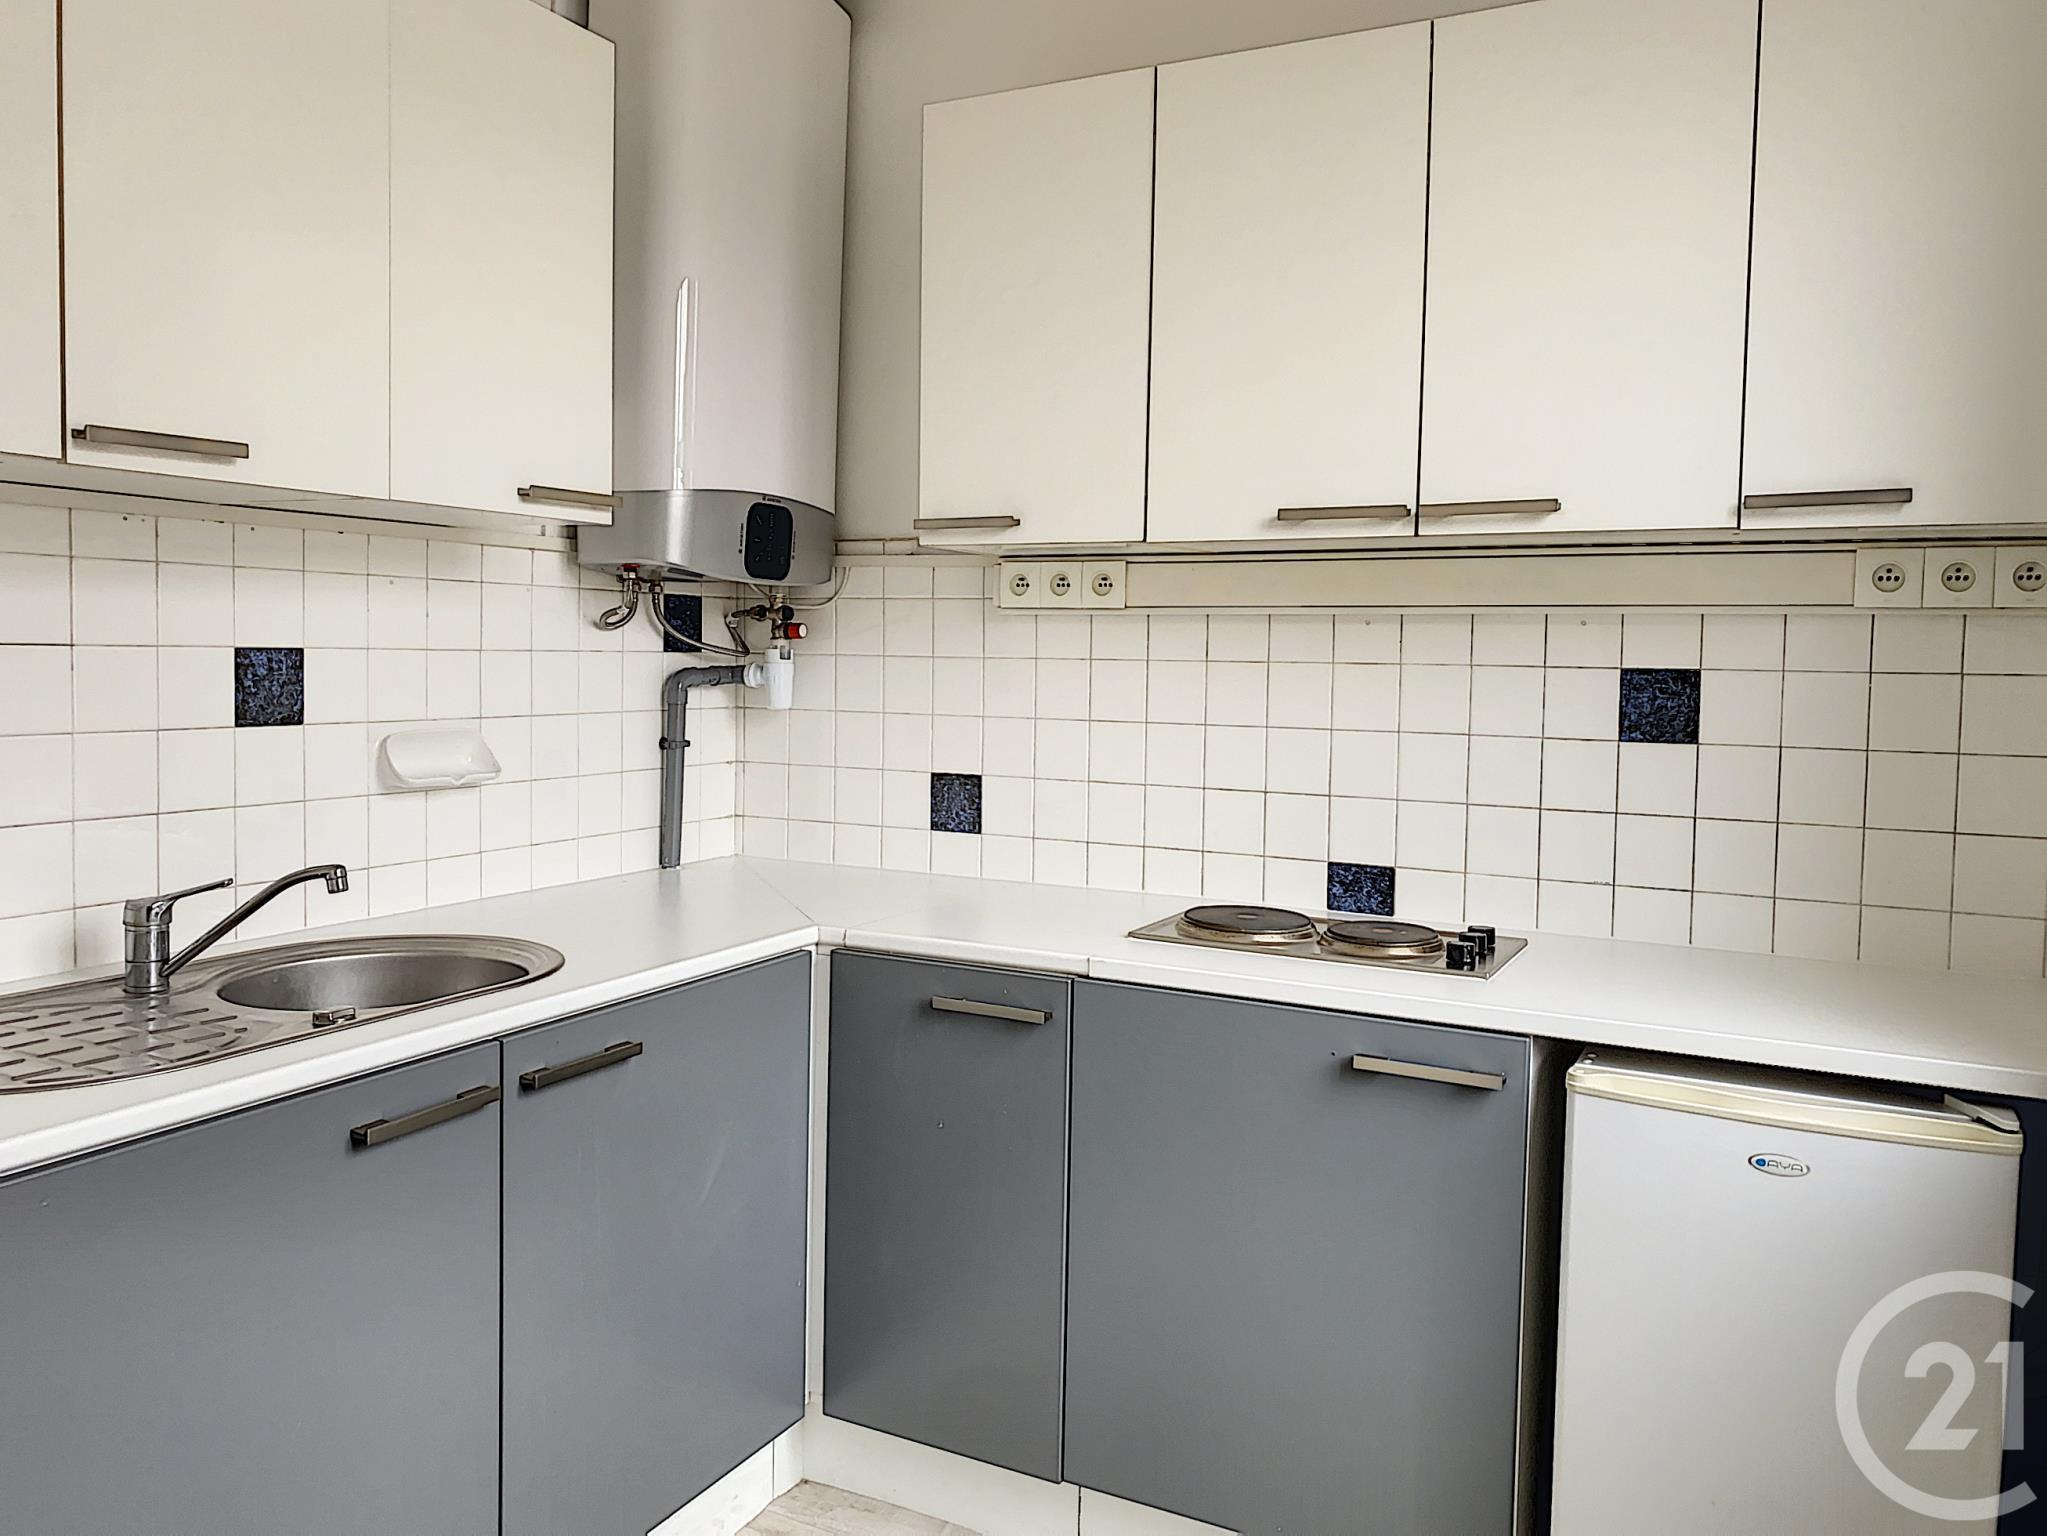 Appartement F2 à louer - 2 pièces - 39 m2 - TROYES - 10 - CHAMPAGNE-ARDENNE